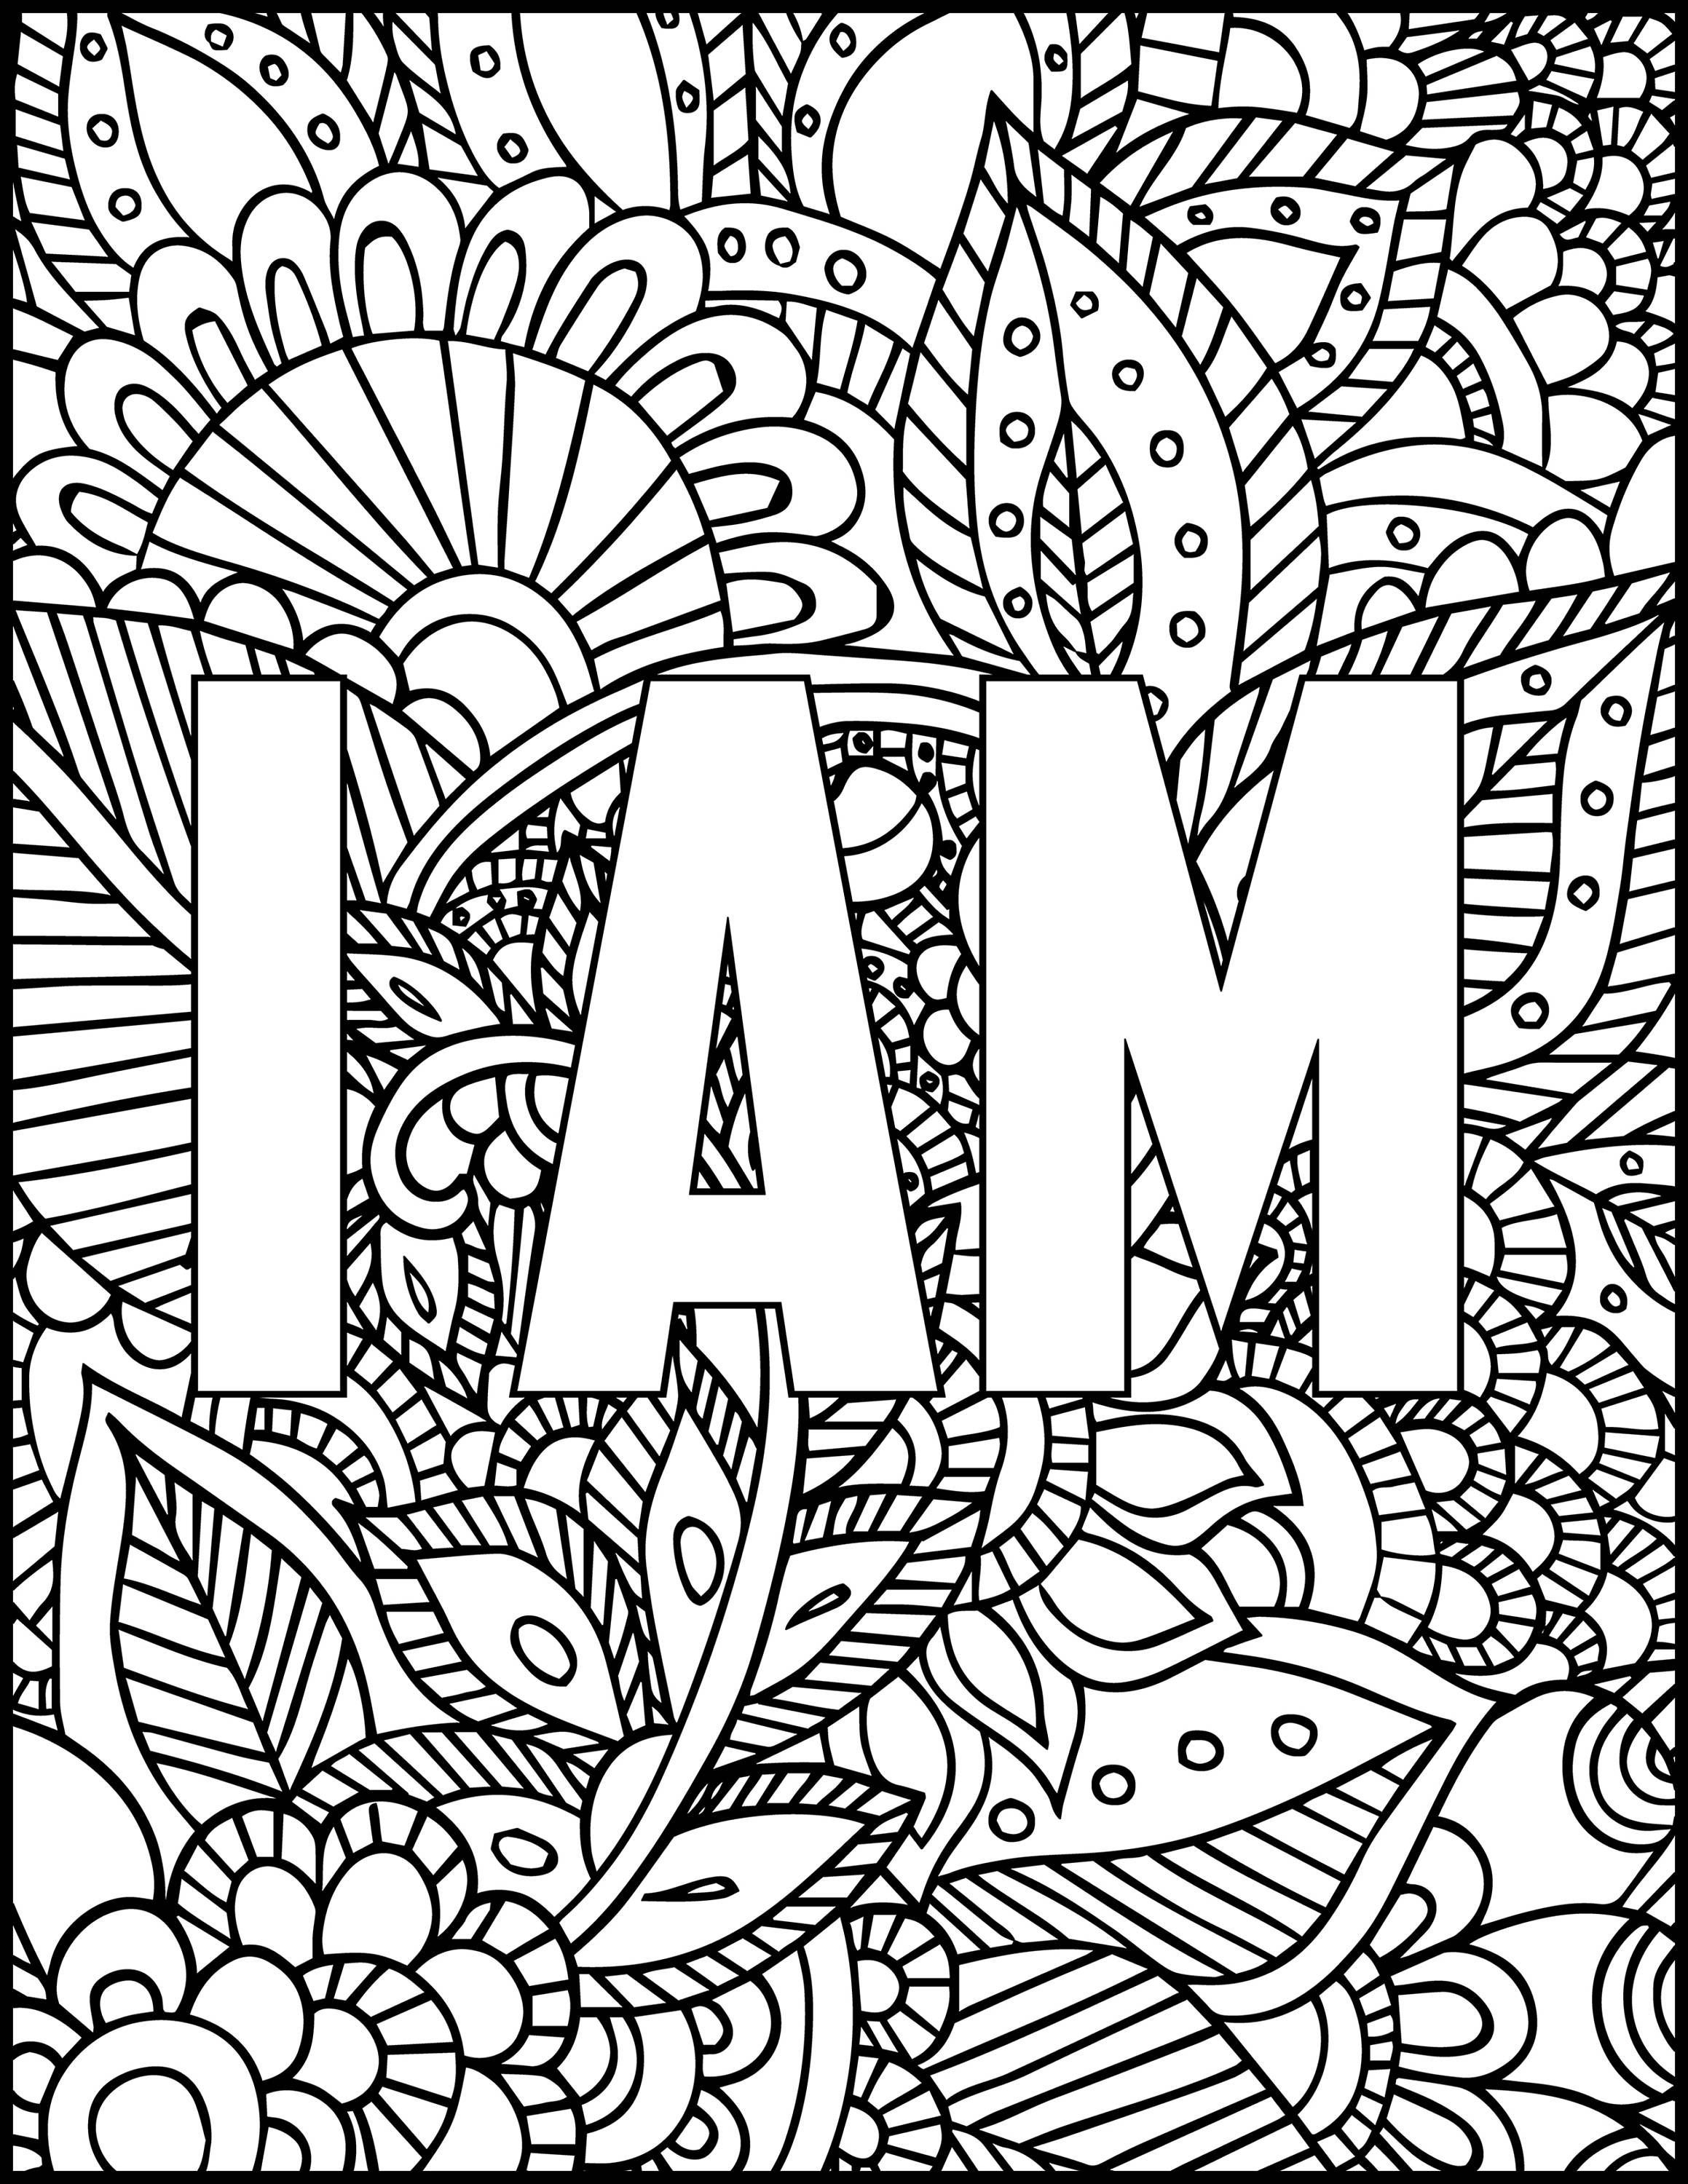 5 Printable Coloring Pages I Am Coloring Bundle Coloring Detailed Coloring Pages Printa In 2021 Detailed Coloring Pages Printable Coloring Book Abstract Coloring Pages